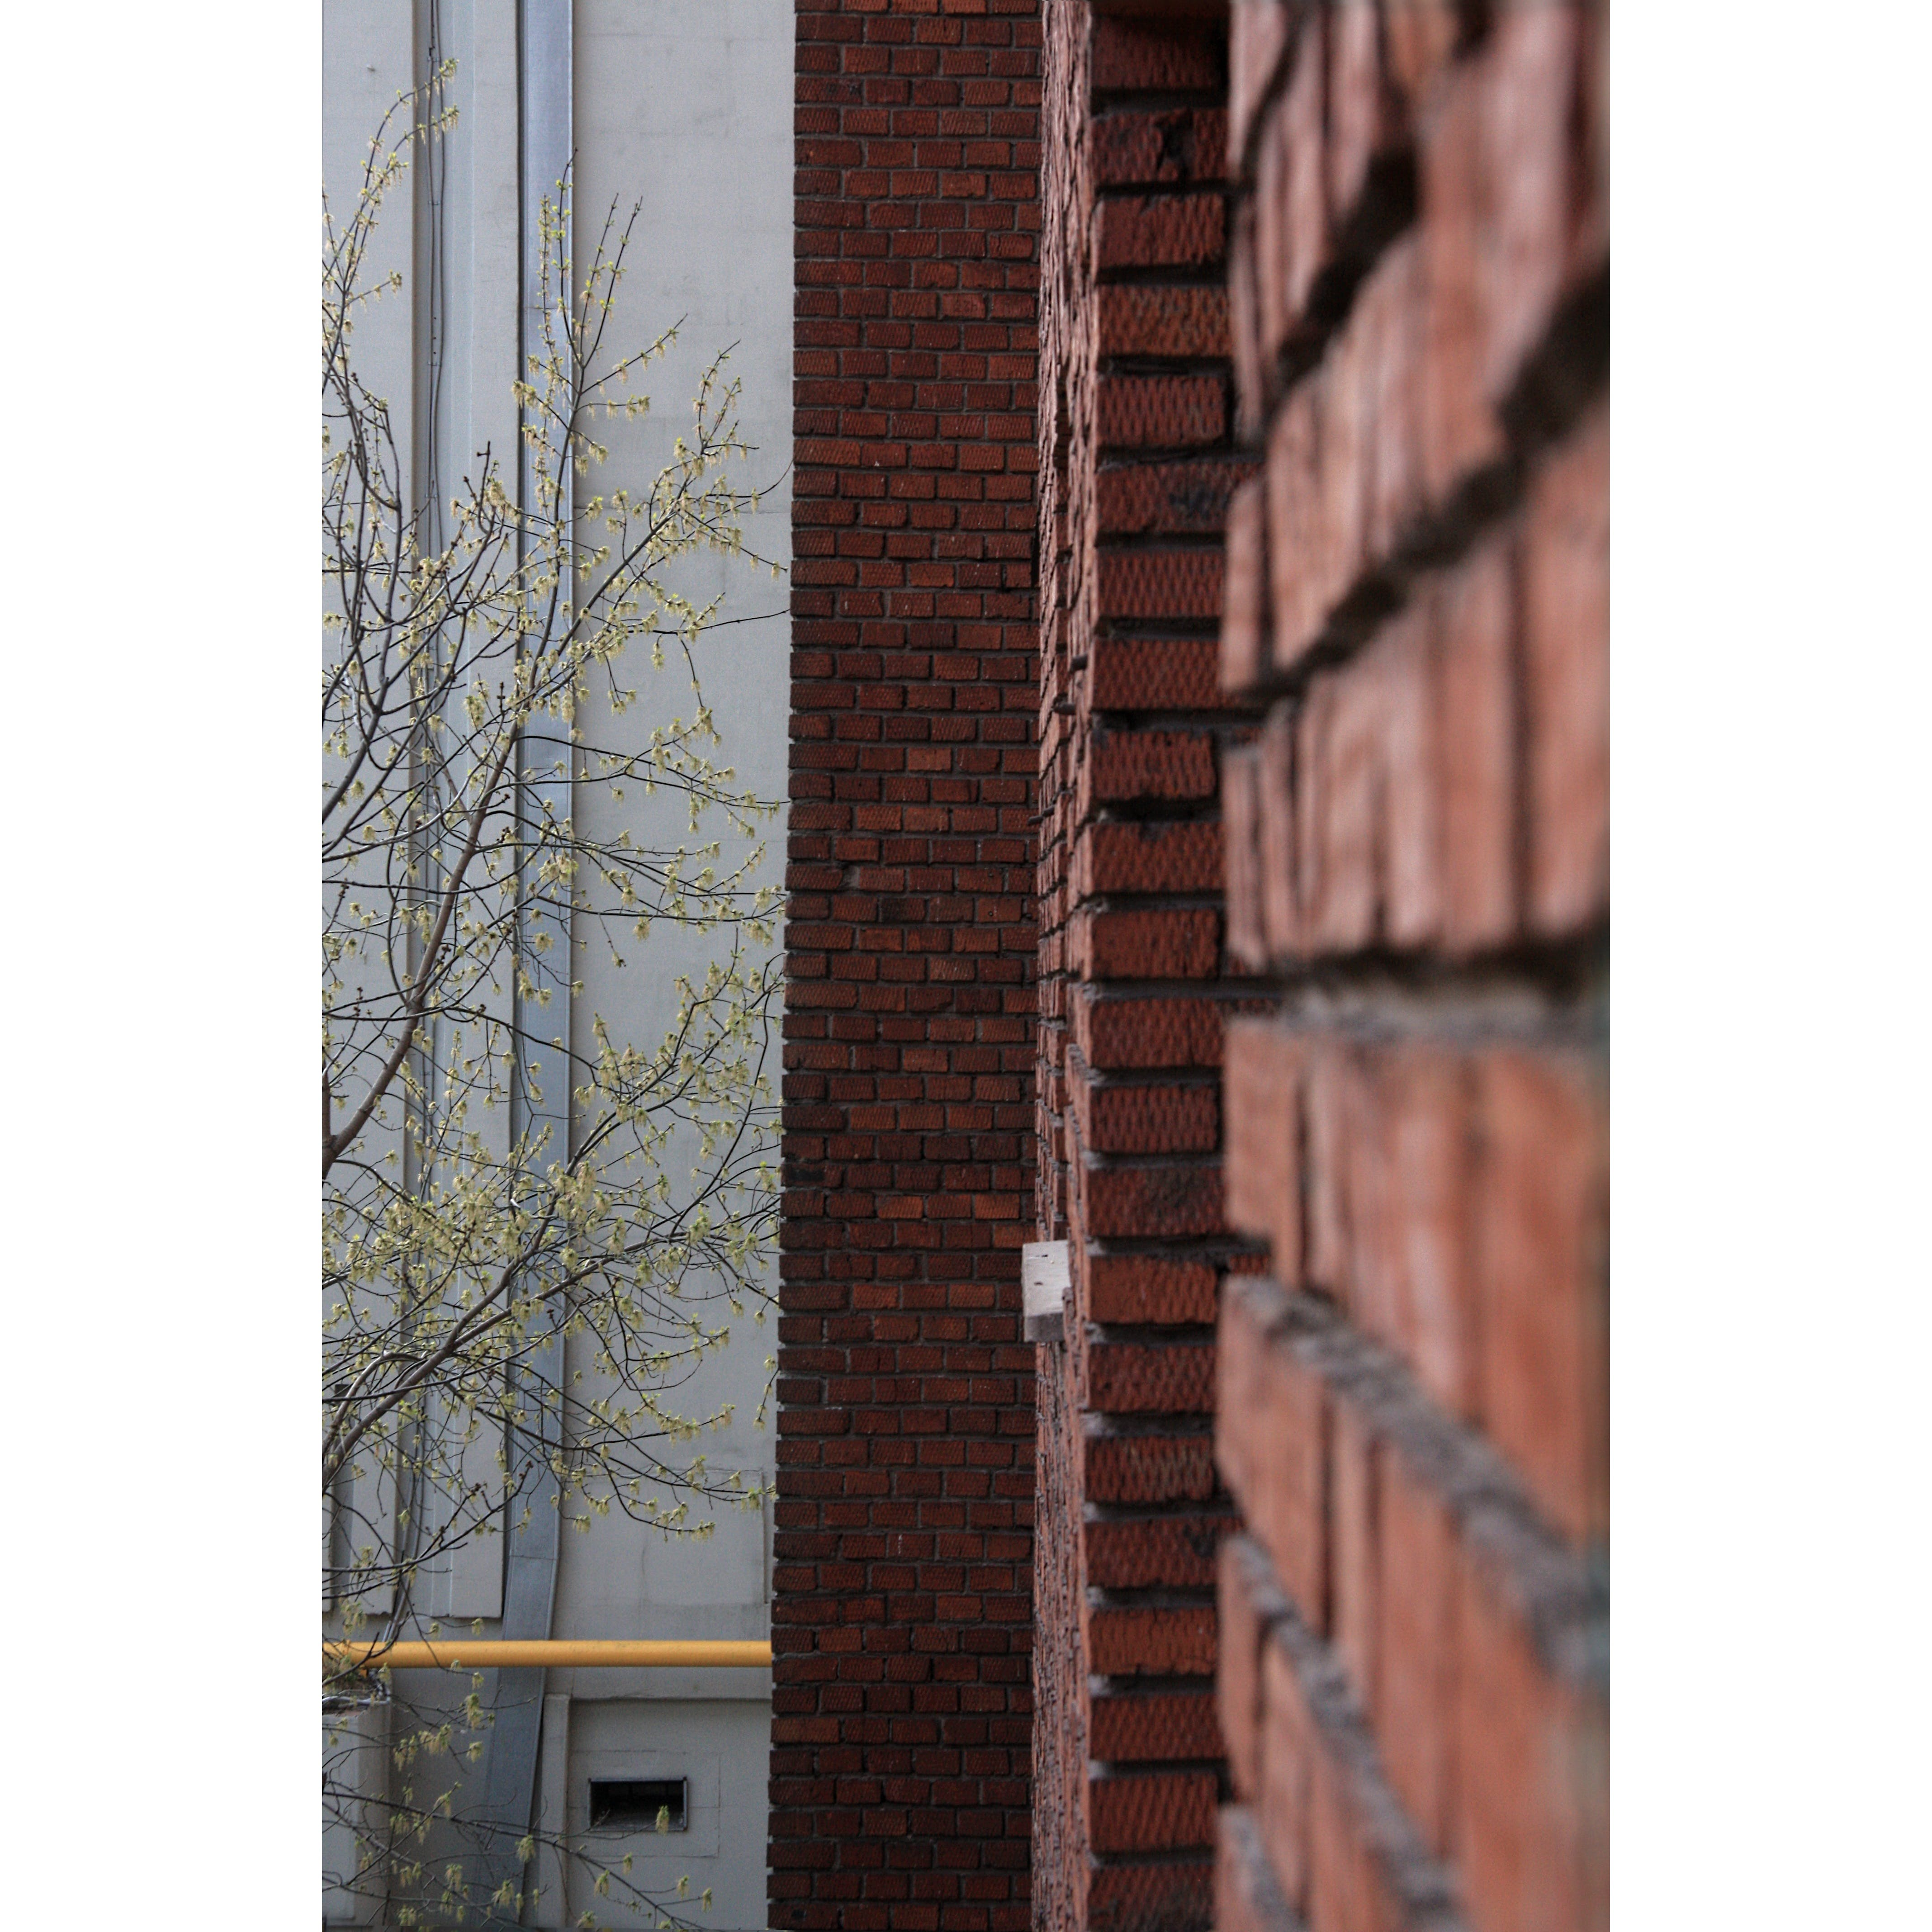 Free stock photo of android wallpaper, brick wall, brick walls, city